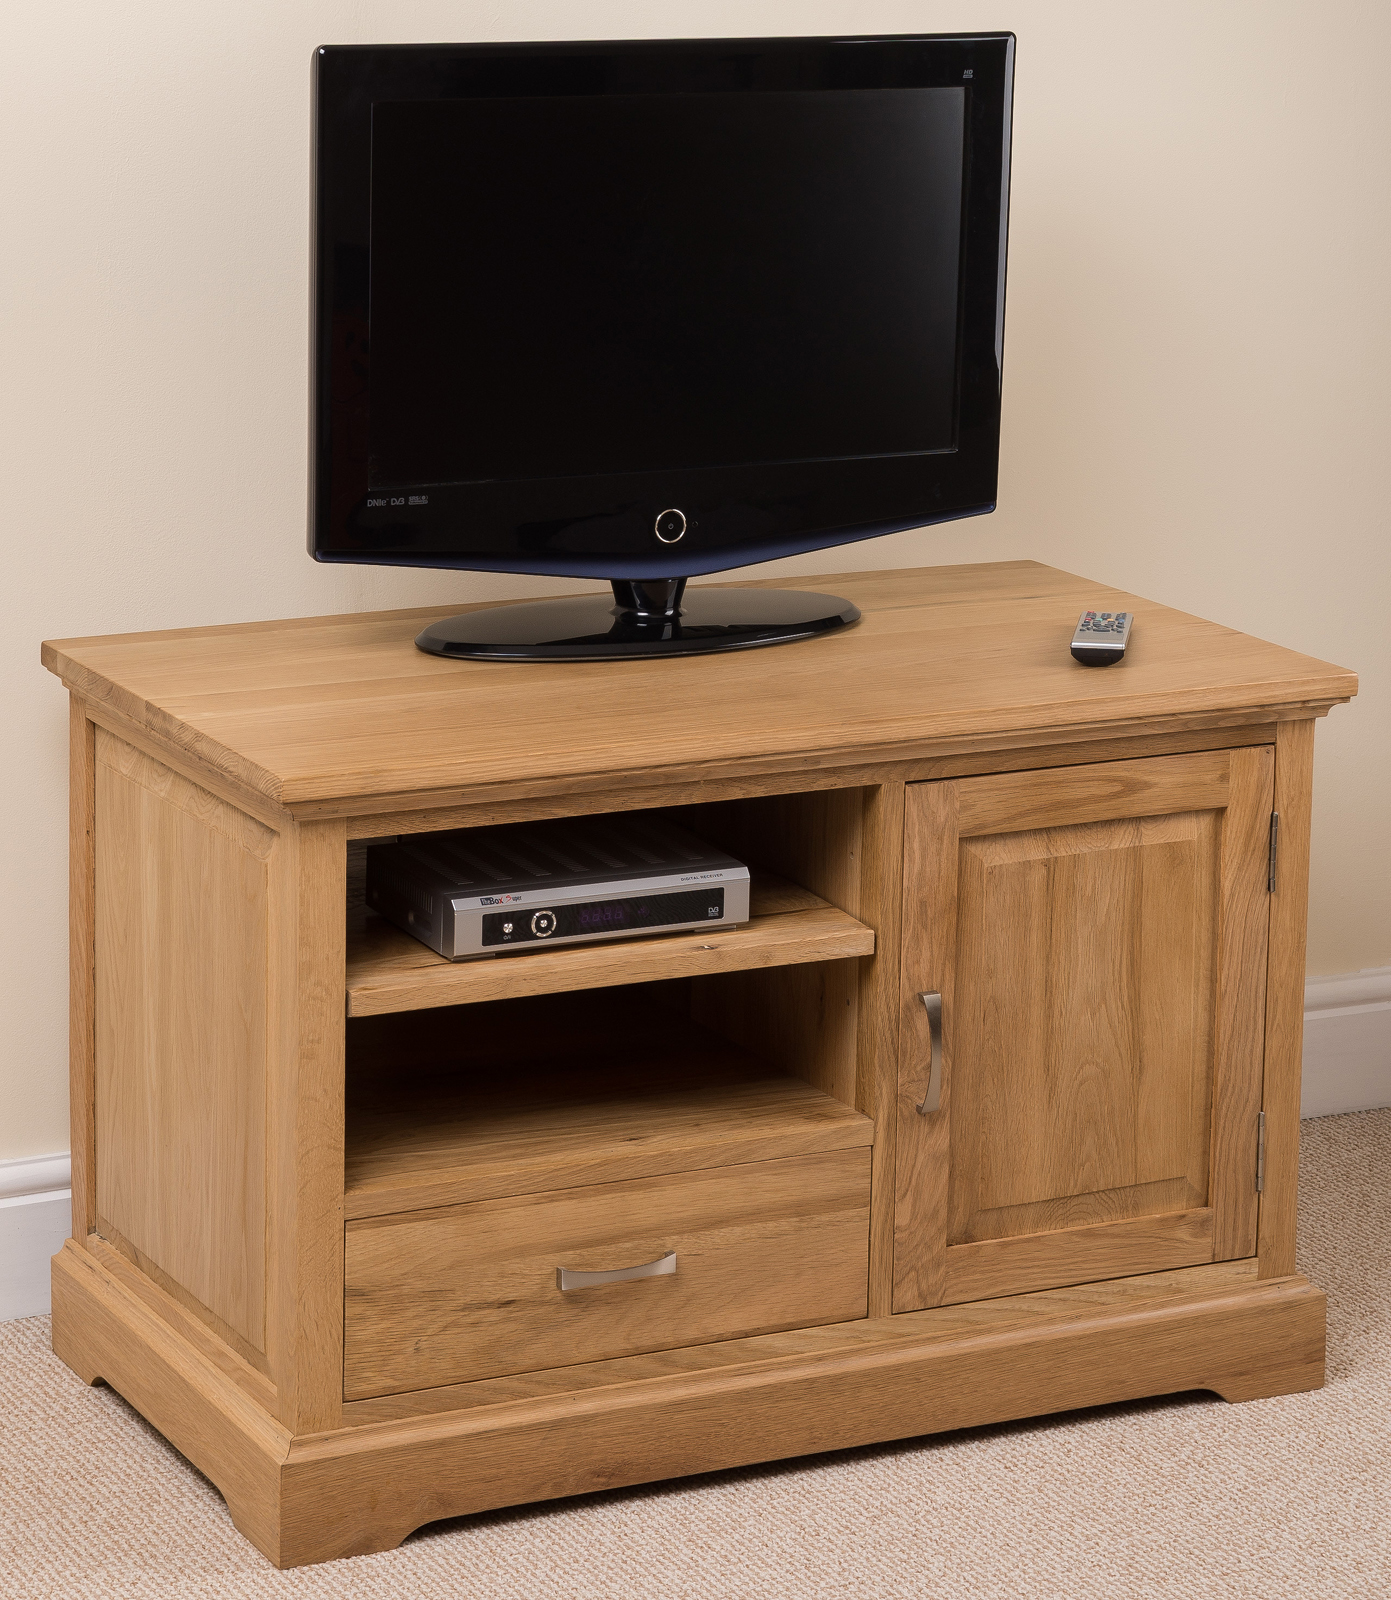 Aspen 100 solid oak small tv television cabinet stand for Tv stand for small living room